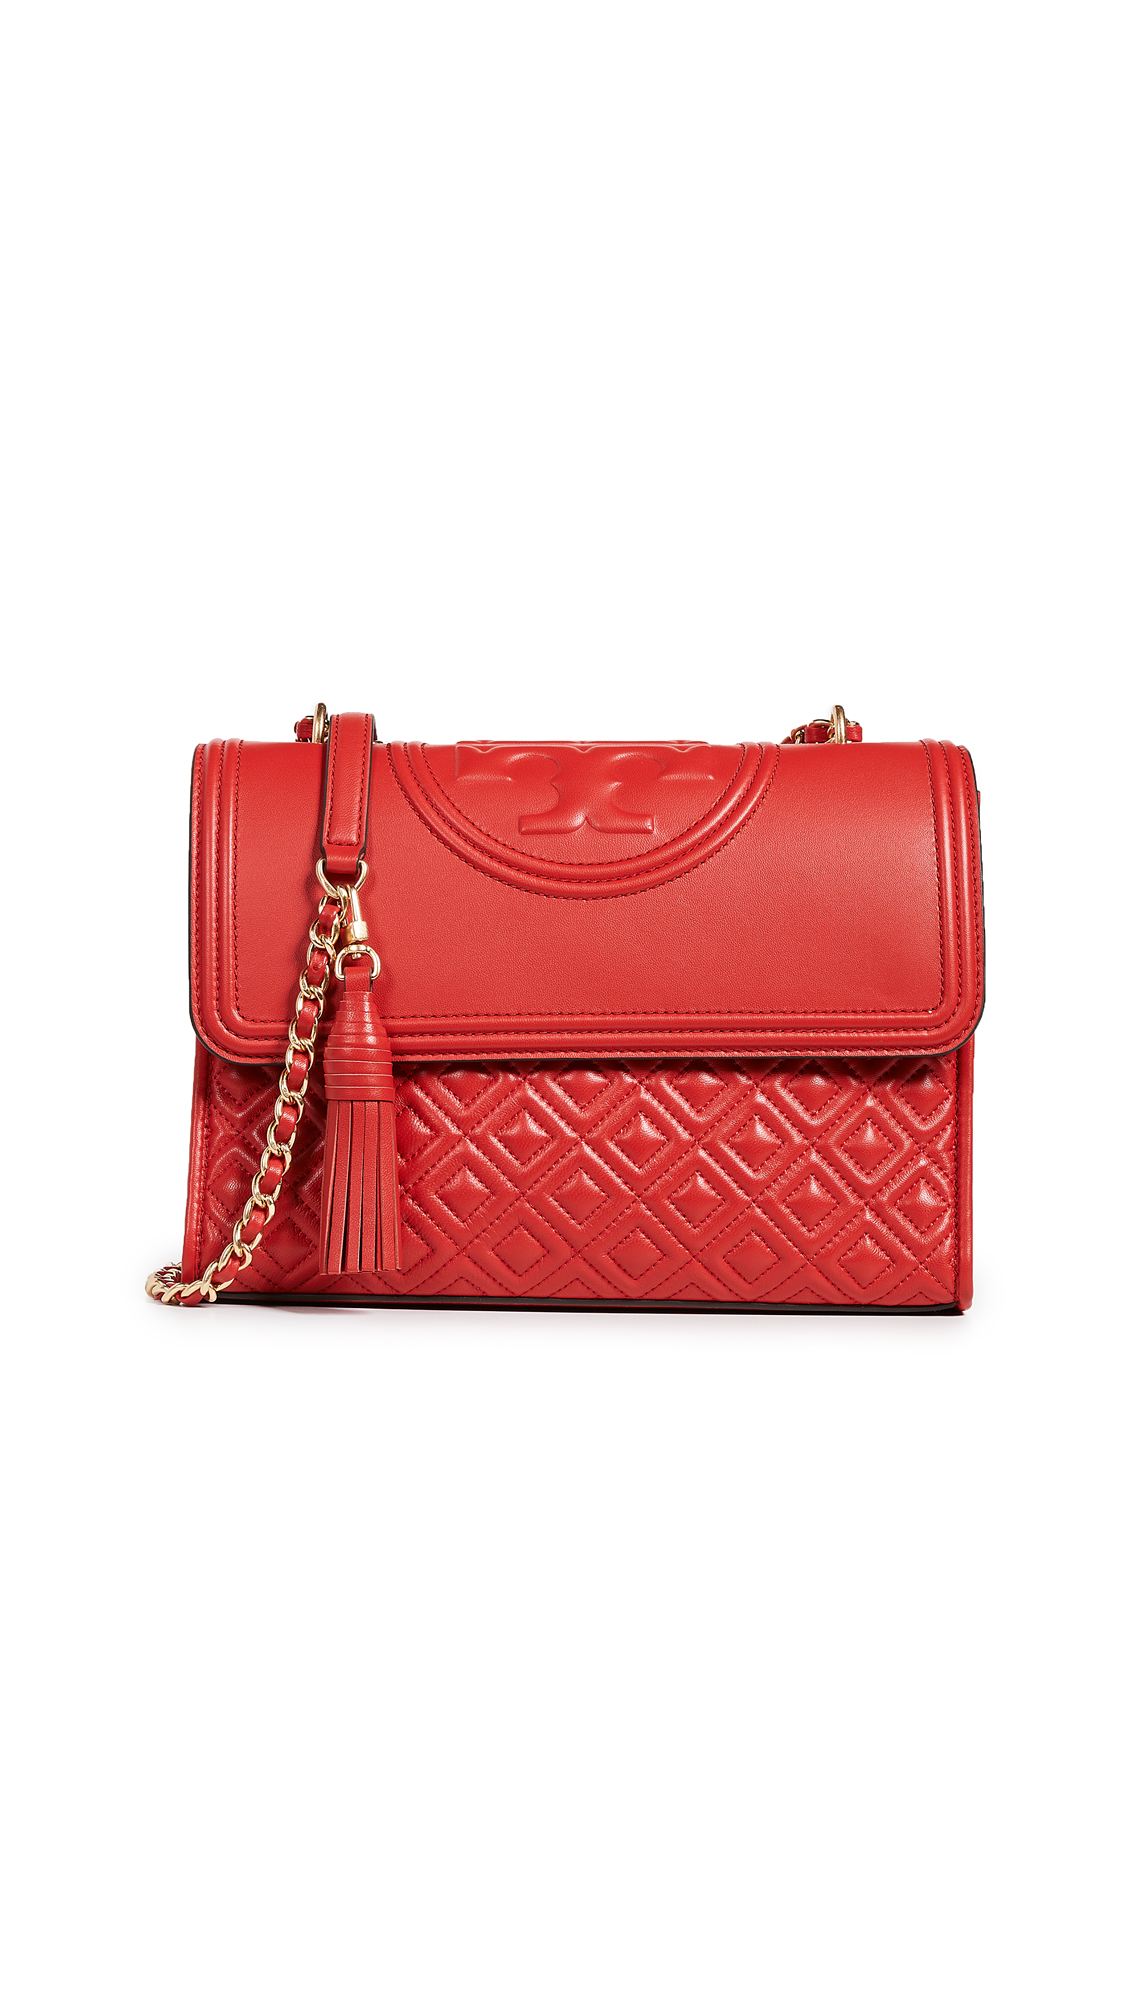 3bbfce7a389 Tory Burch Fleming Exotic Red Leather Small Convertible Shoulder ...